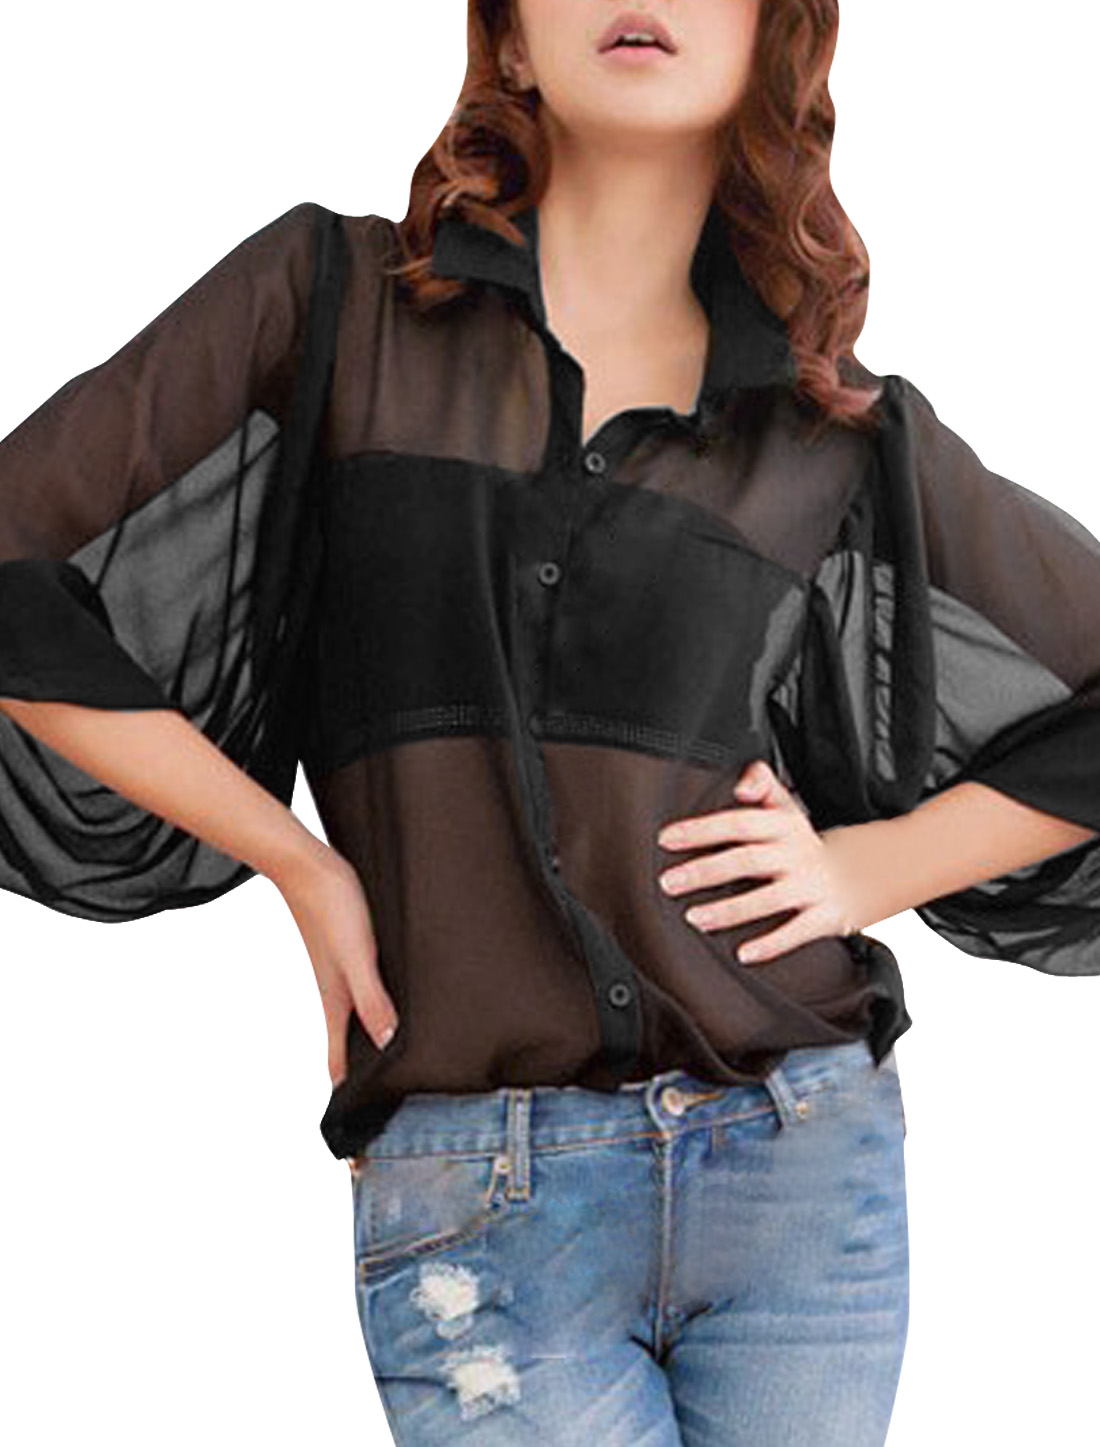 Ladies Black Point Collar Semi Sheer Button-up Casual Chiffon Top Shirt L